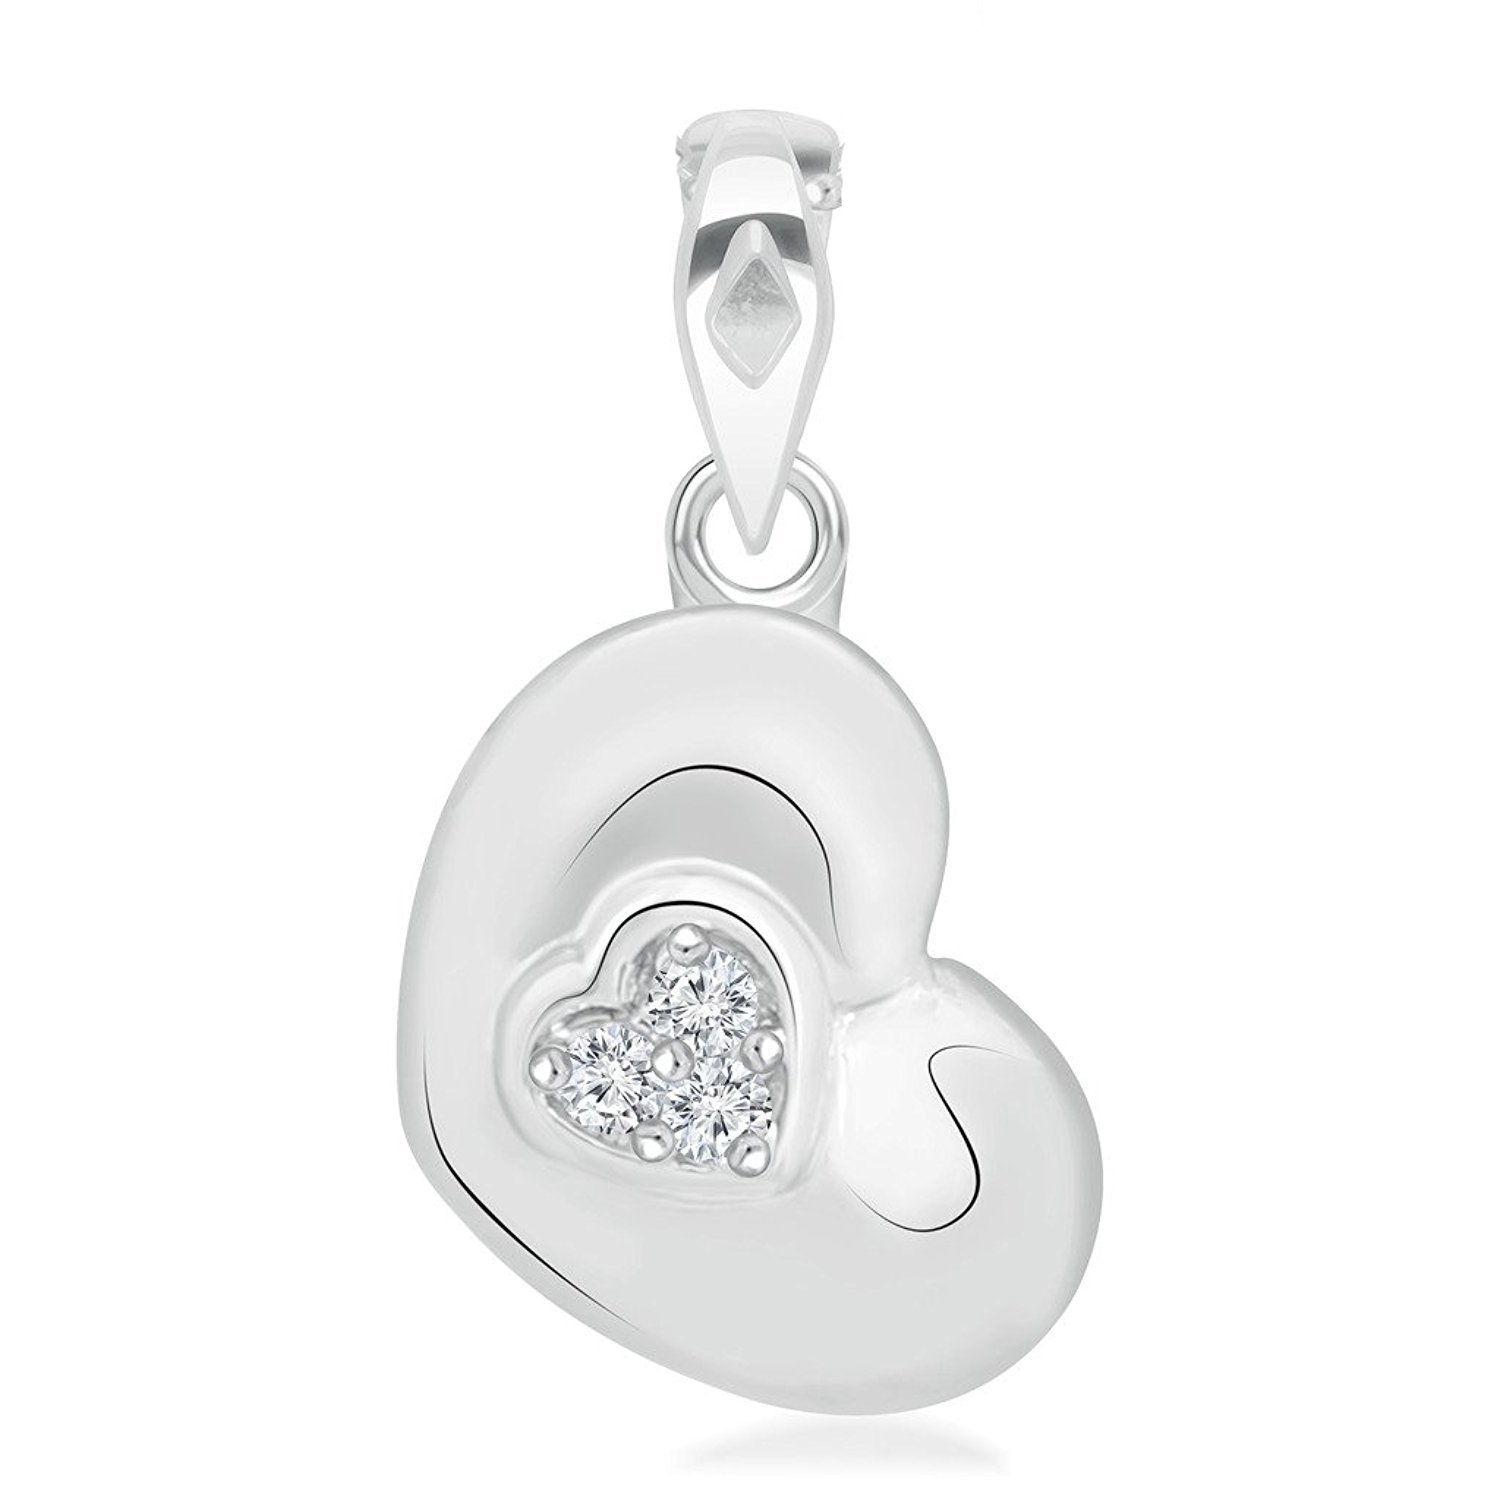 ArtLine Jewels Simulated Diamond Studded Love Promise Heart Pendant Necklace in 14K White Gold Plated With Box Chain